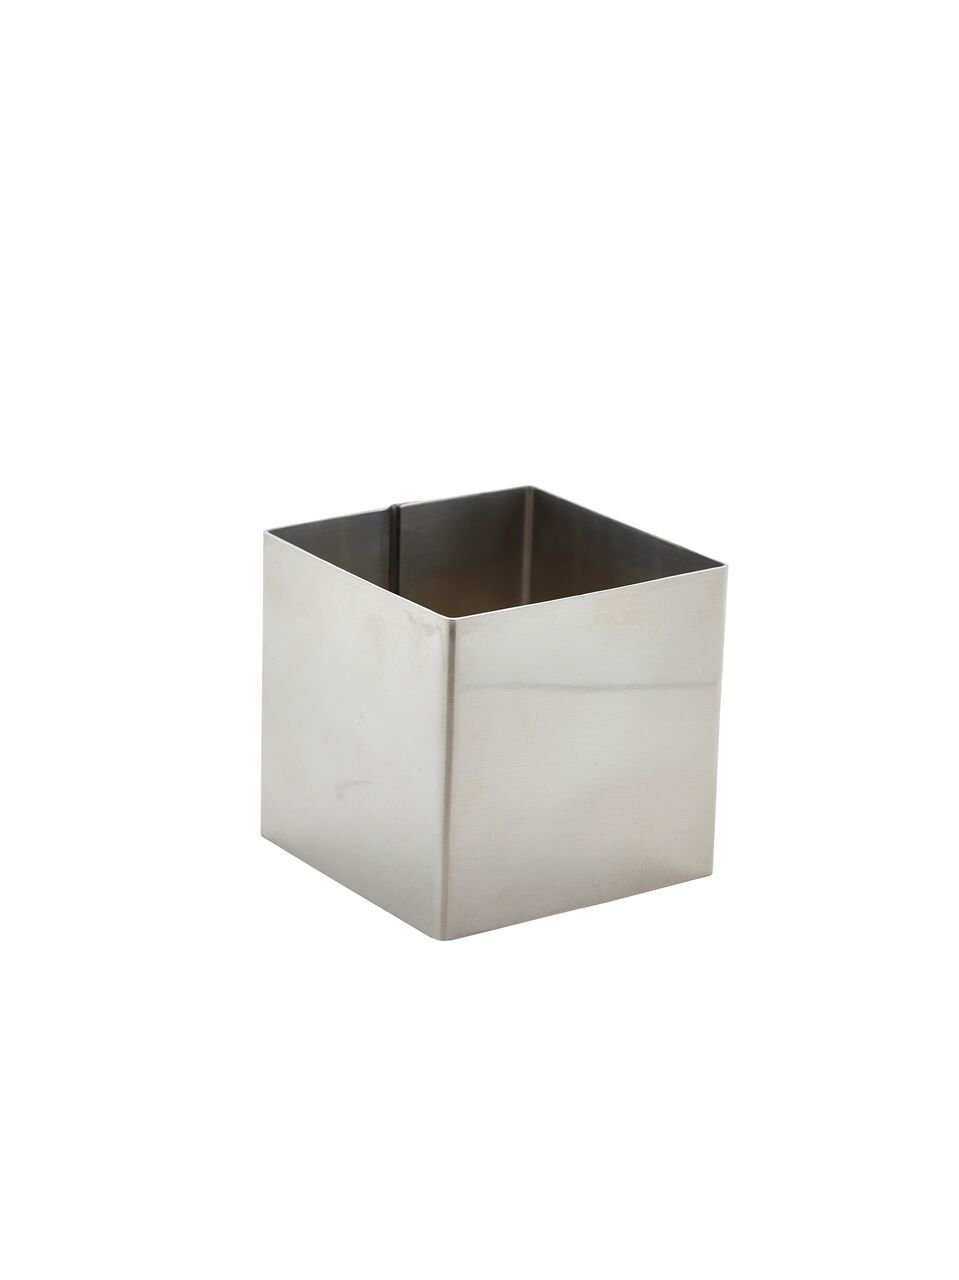 Stainless Steel Square Mousse Ring 6x6cm